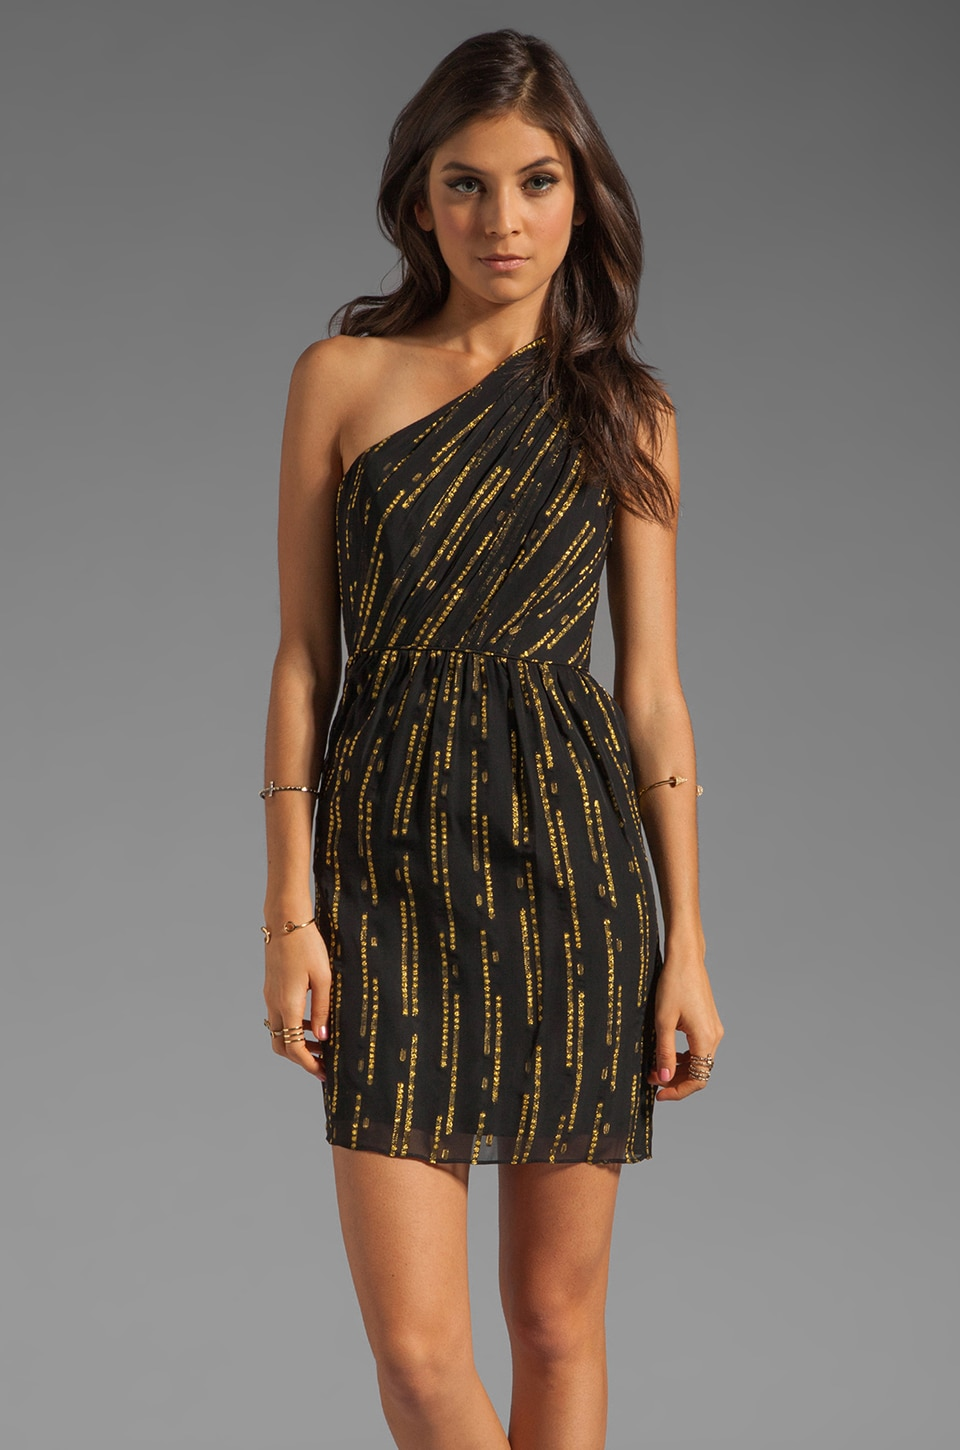 Shoshanna Brookline Lurex Chiffon Alexis Dress in Black/Gold